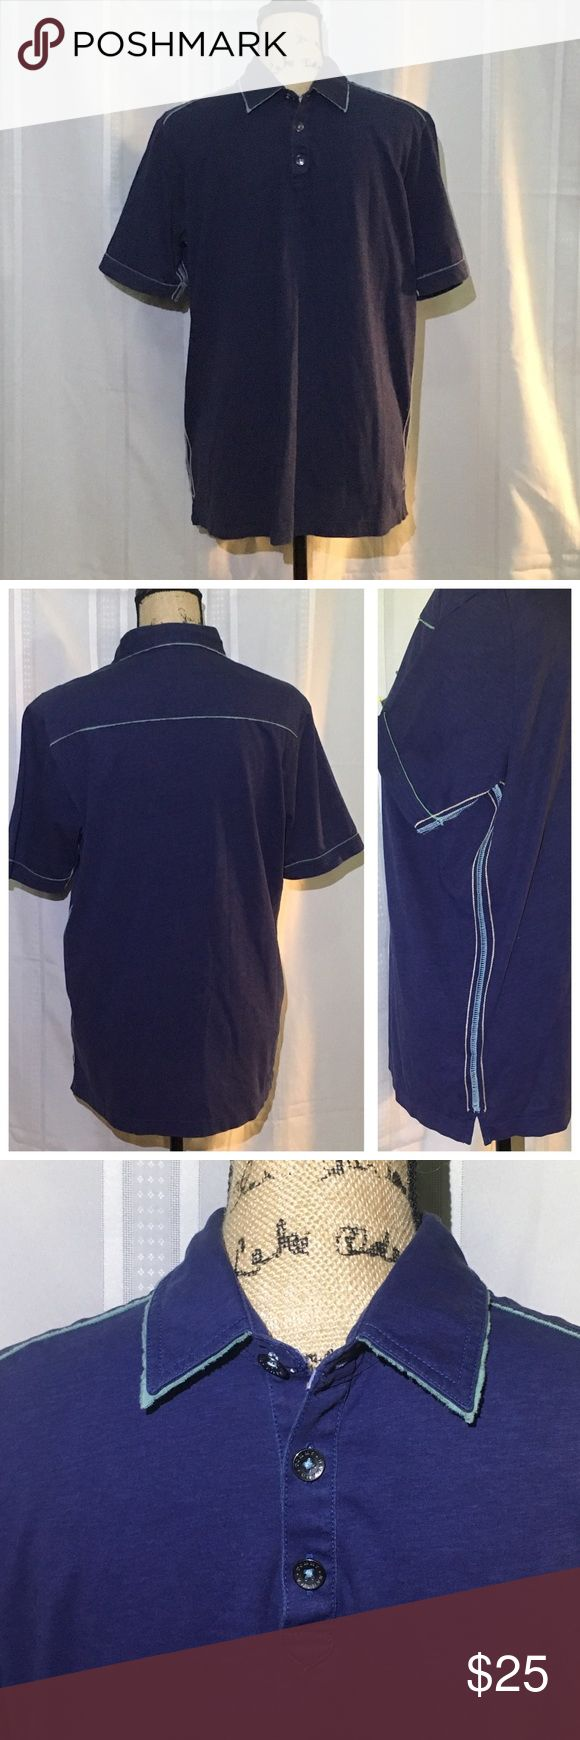 Tommy Bahama Jeans Dk Blue Polo Shirt 100% Pima Cotton Polo shirt has contrasting light blue trim on the collar, sleeve and hem with selvedge edges. Short is in excellent condition. Tommy Bahama Shirts Polos